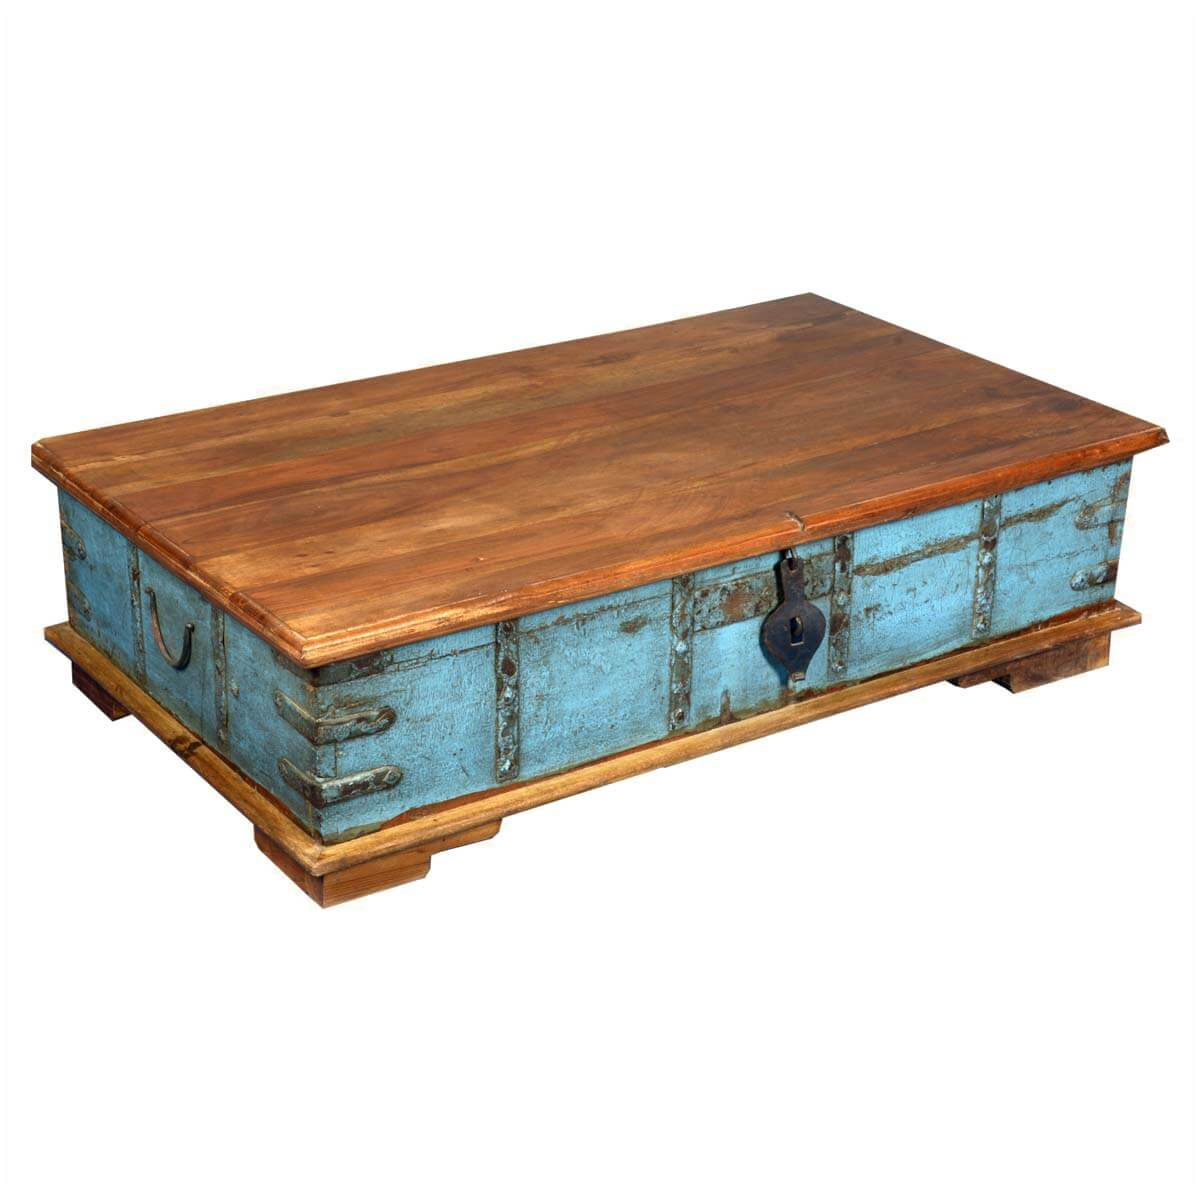 Sky blue reclaimed wood standing coffee table storage chest for Reclaimed wood coffee table with storage